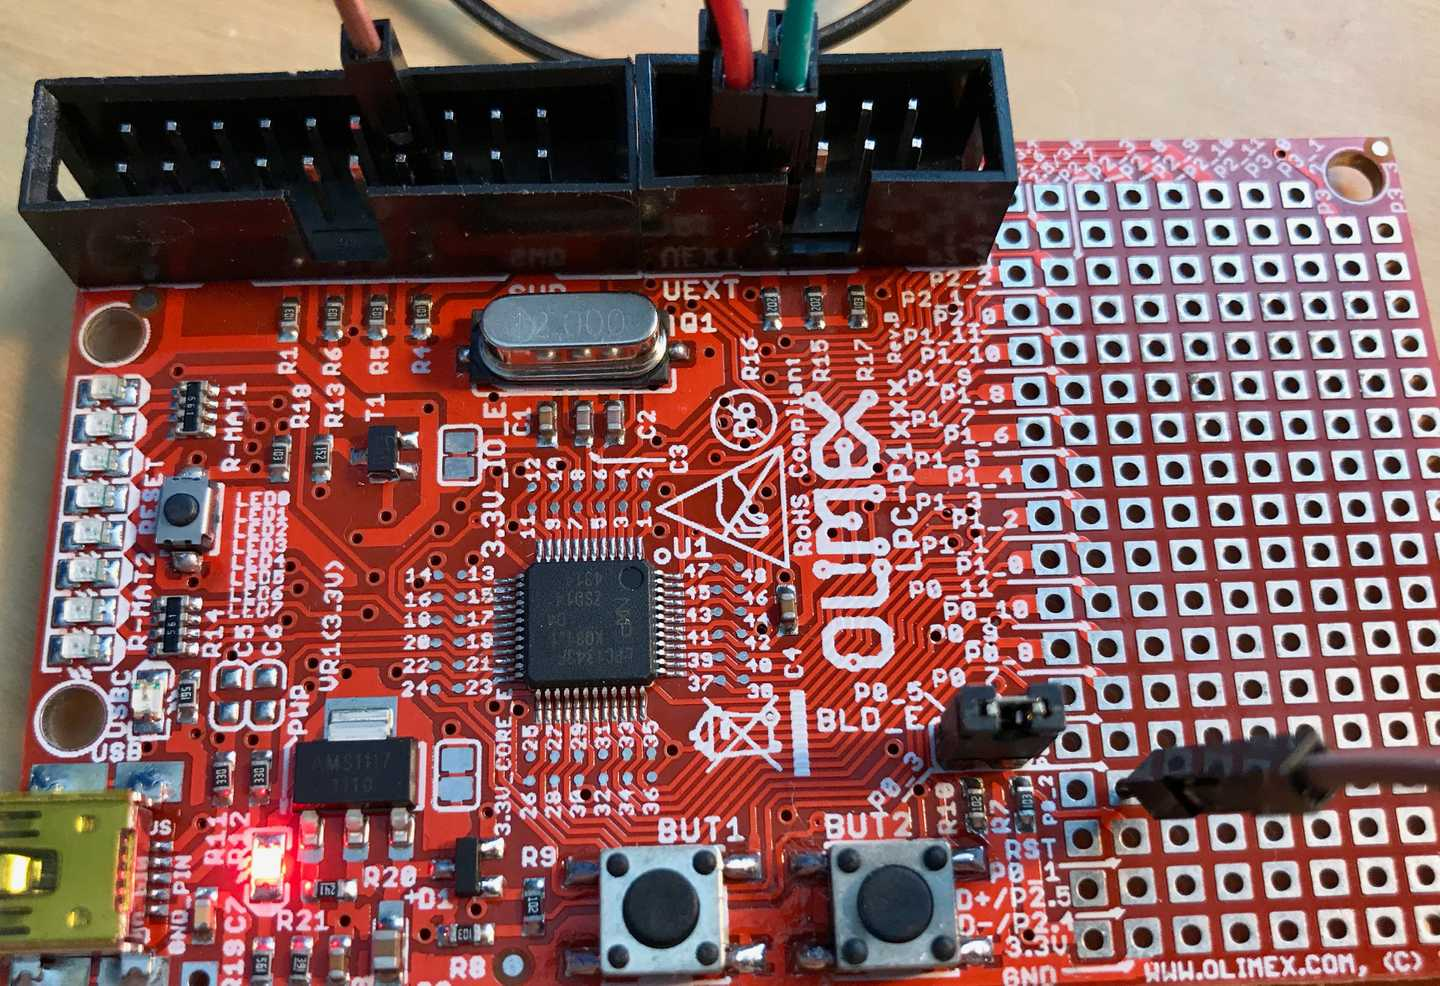 NXP LPC1343 Bootloader Bypass (Part 1) - Communicating with